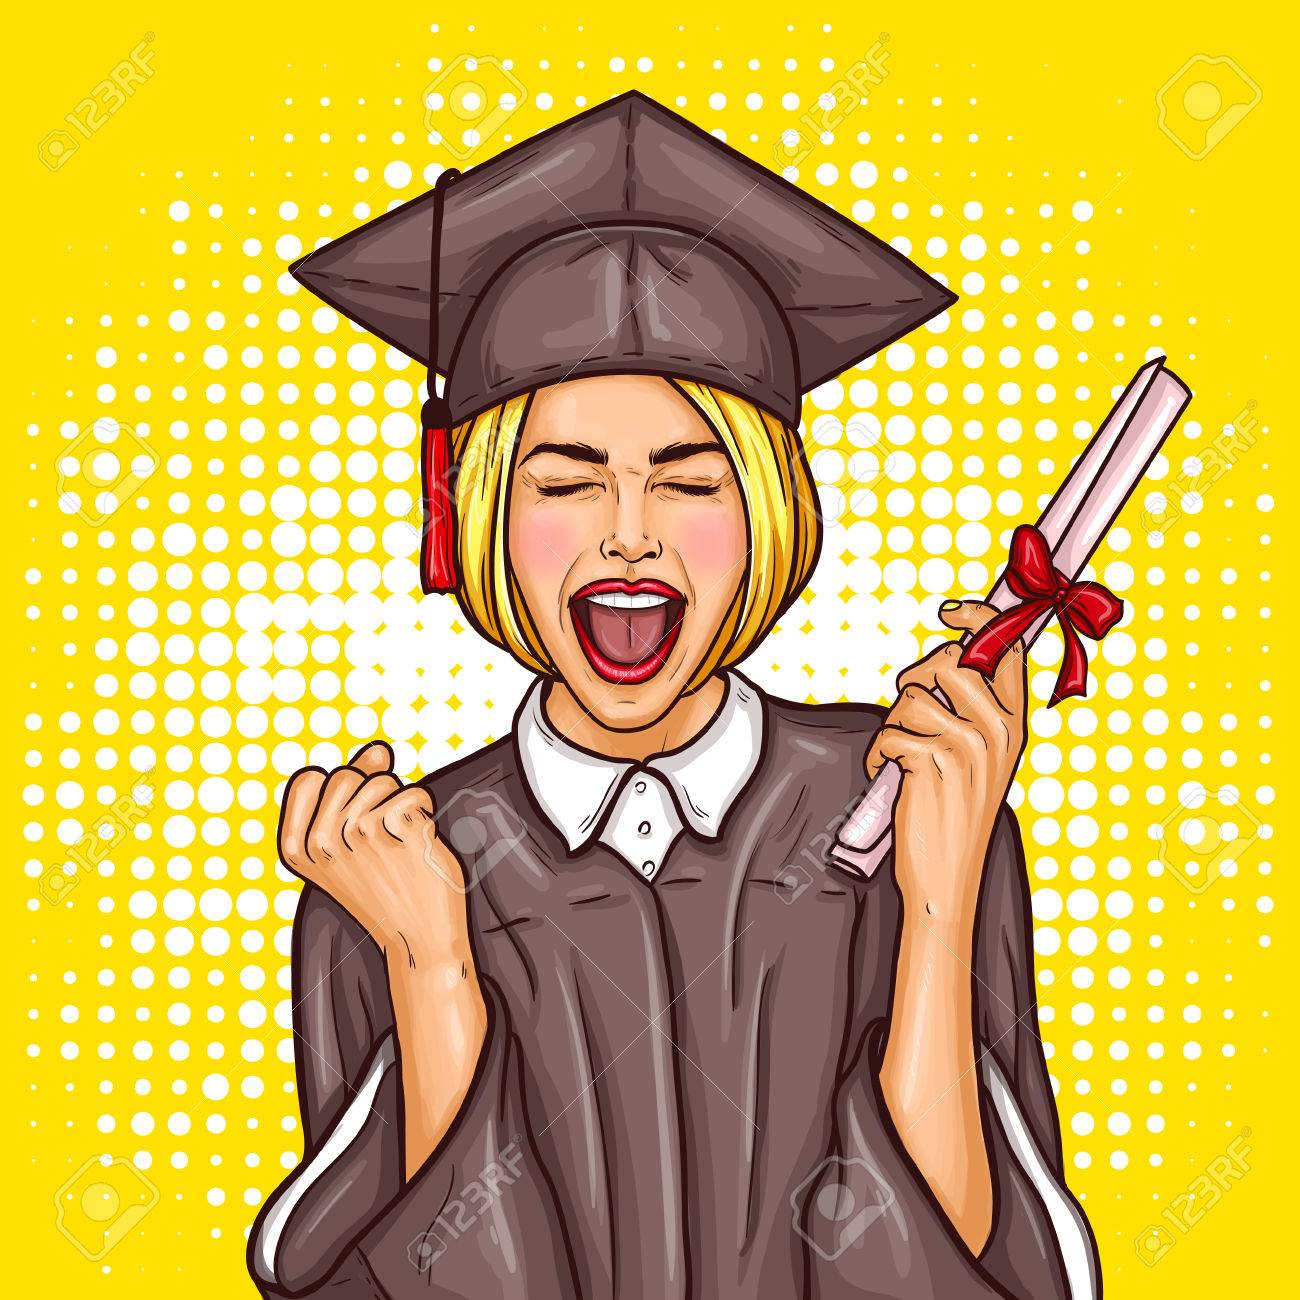 79a94cb7bf7 Illustration - pop art illustration of an excited young girl graduate  student in a graduation cap and mantle with a university diploma in her  hand.